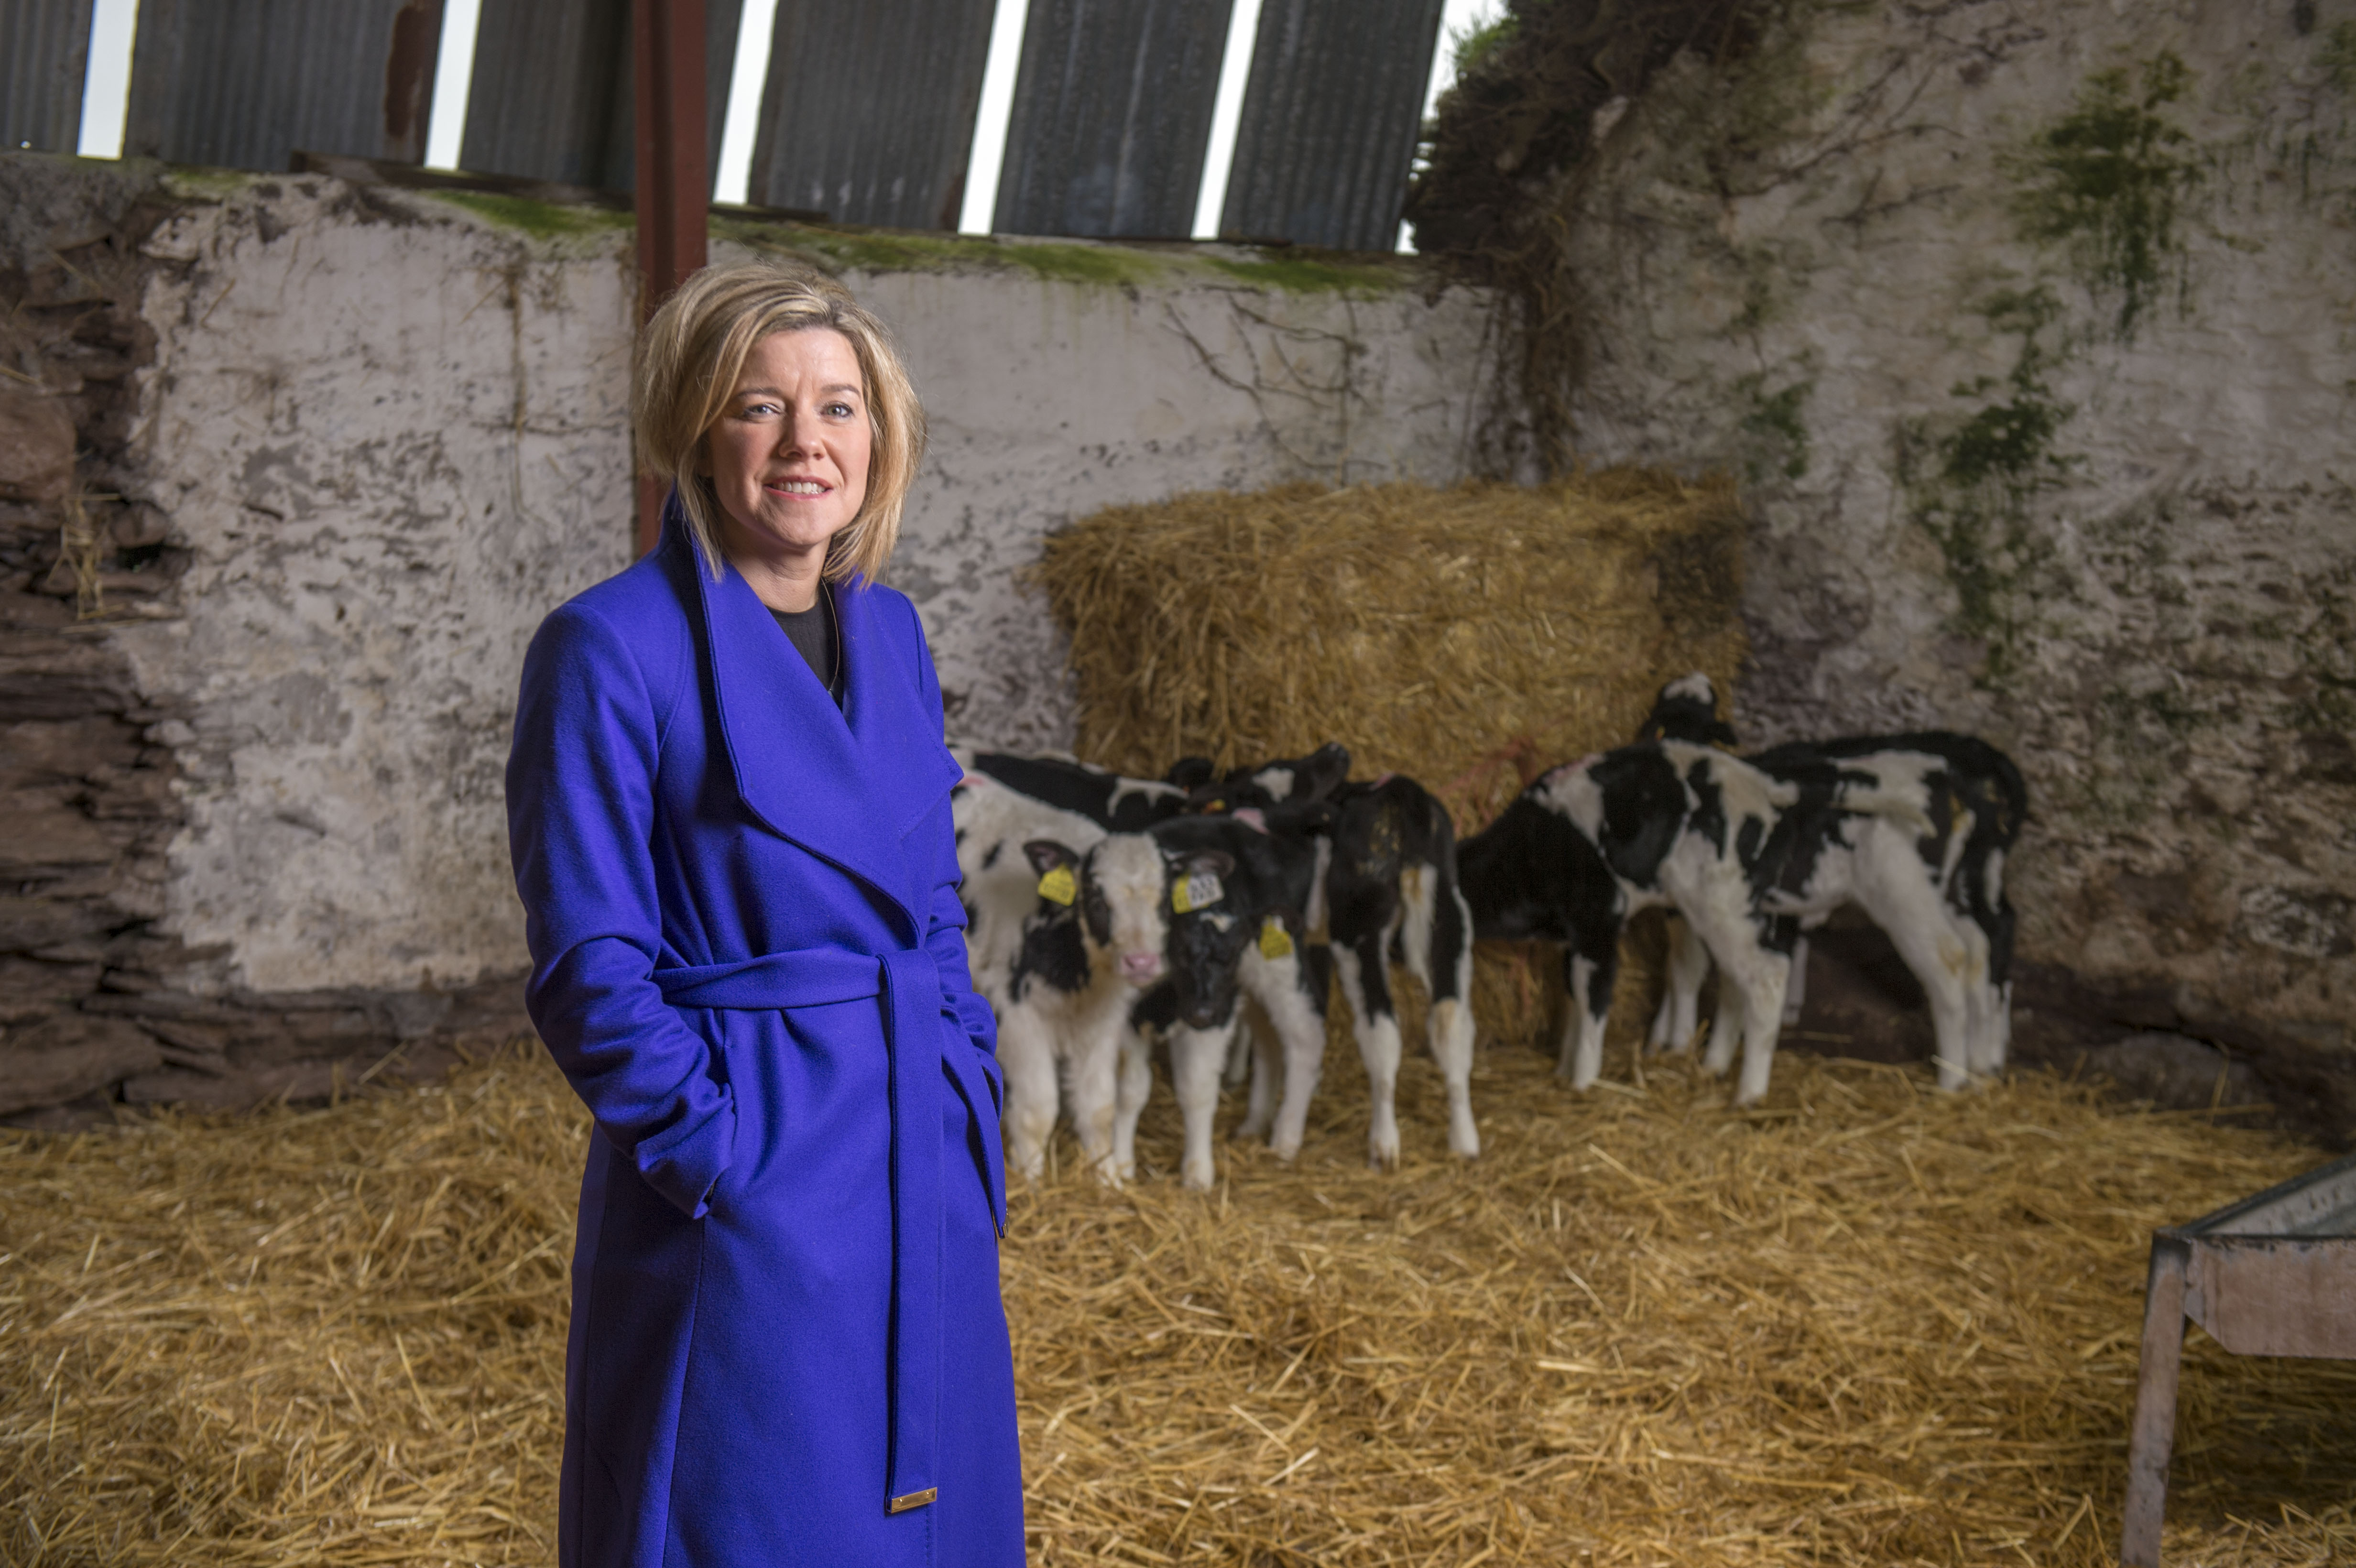 University College Cork appoints new Head of Food Business – Professor Thia Hennessy